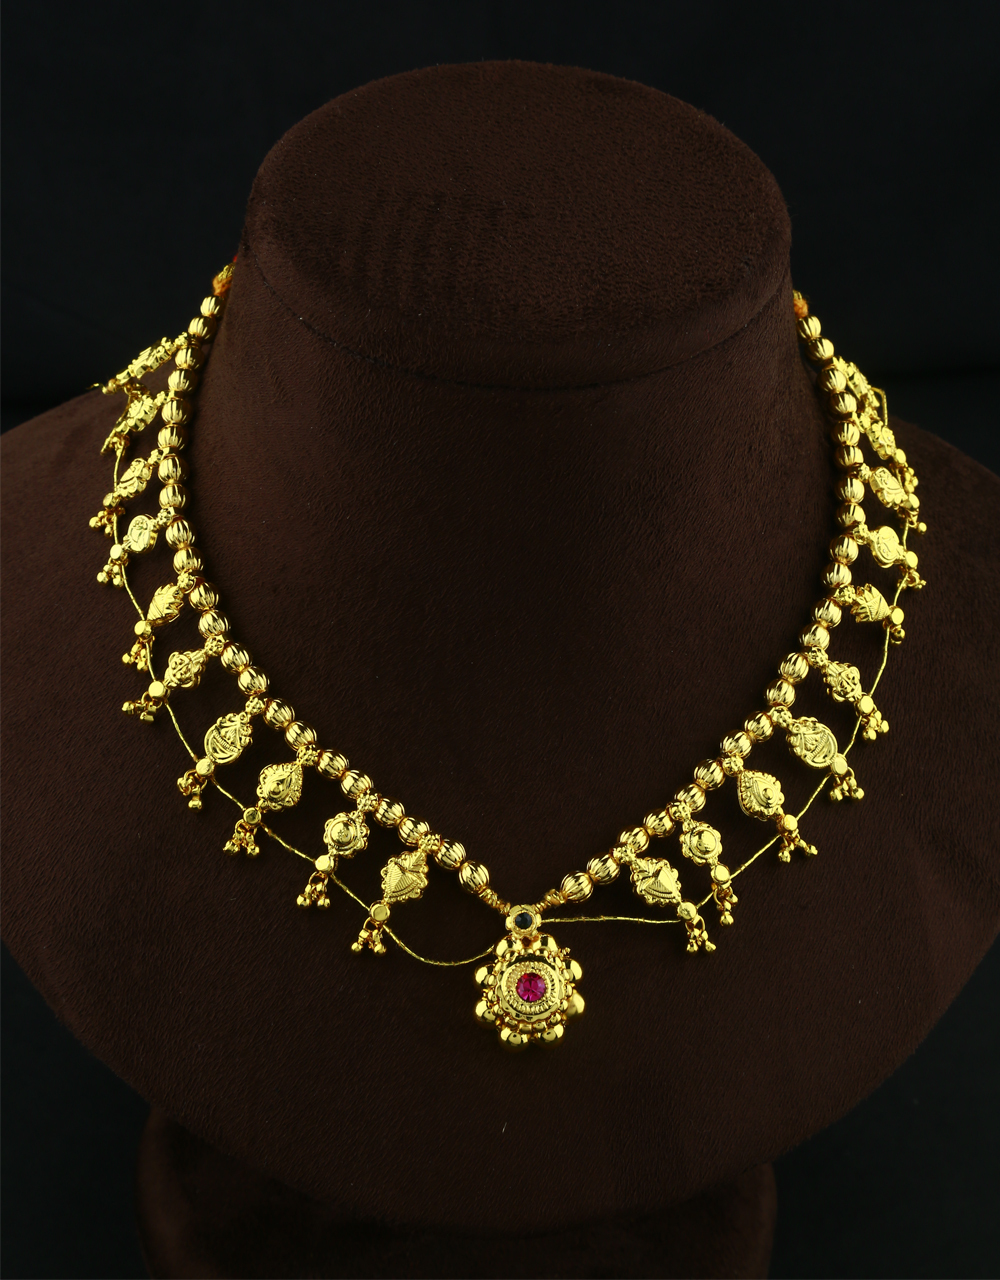 Adorable Pink Colour Thushi Necklace|Maharashtrian Traditional Necklace | Kolhapuri Necklace/Jewellery For Women & Girls